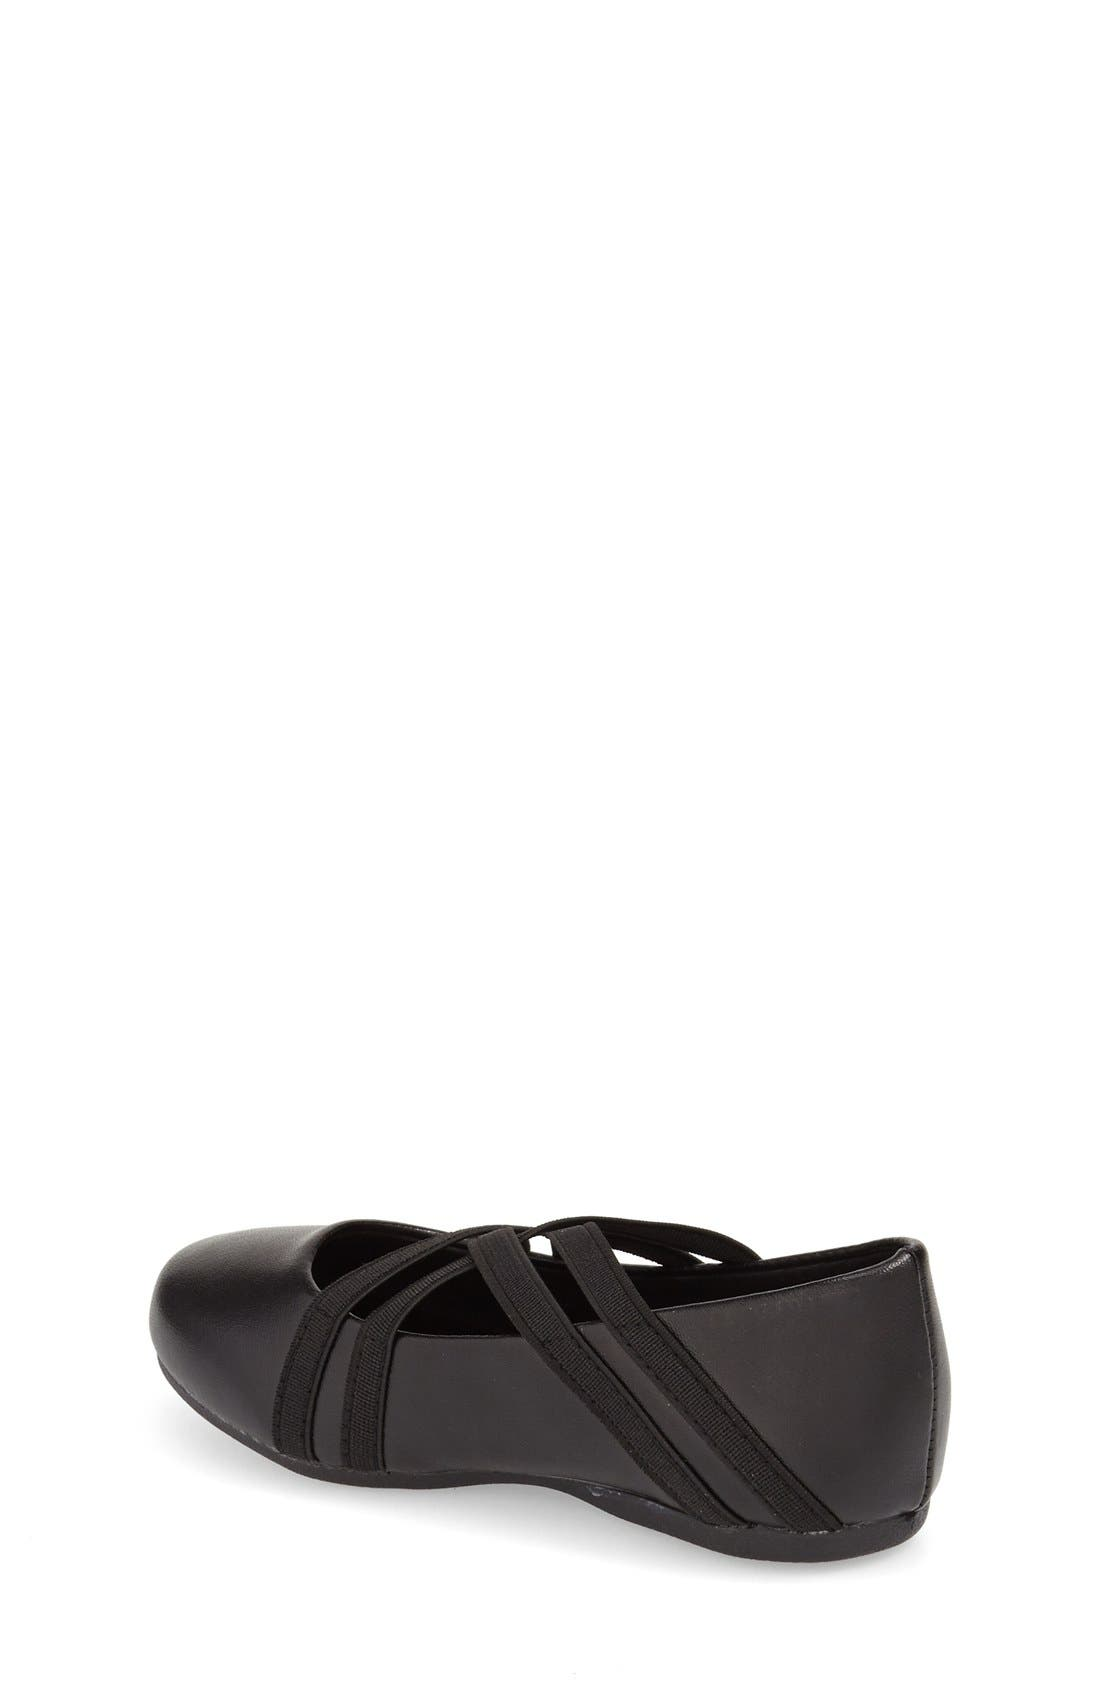 Alternate Image 2  - Kenneth Cole New York 'Rose Bay' Round Toe Flat (Walker, Toddler, Little Kid & Big Kid)